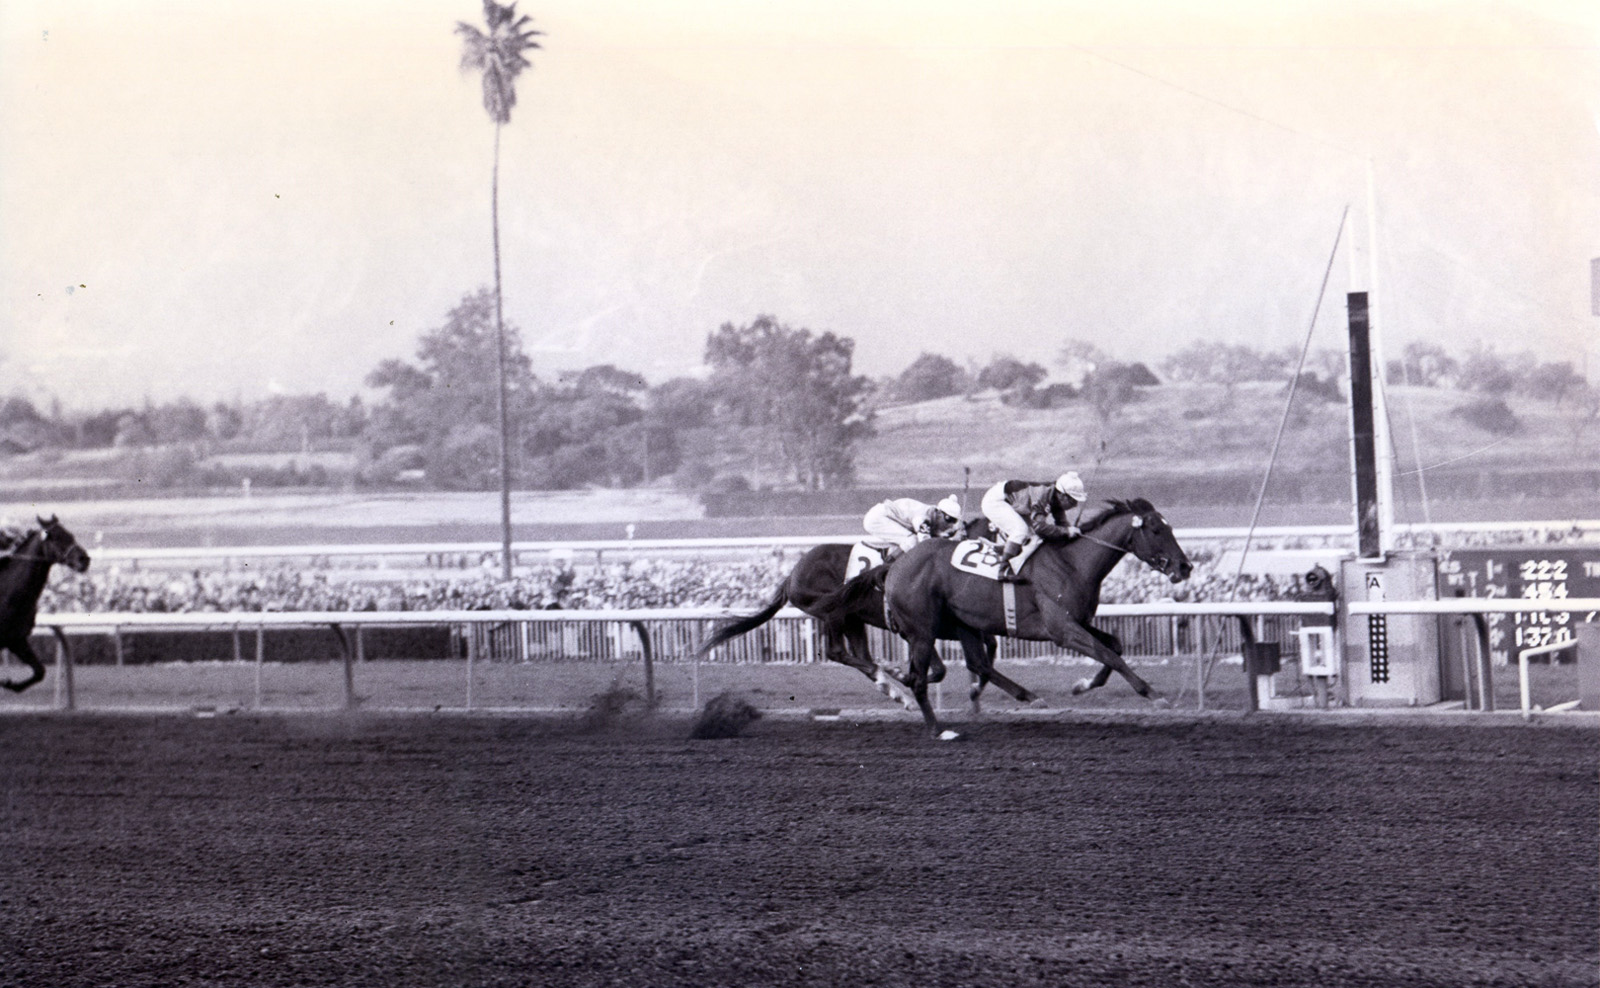 Johnny Longden and Swaps winning the 1955 Santa Anita Derby (Santa Anita Photo/Museum Collection)